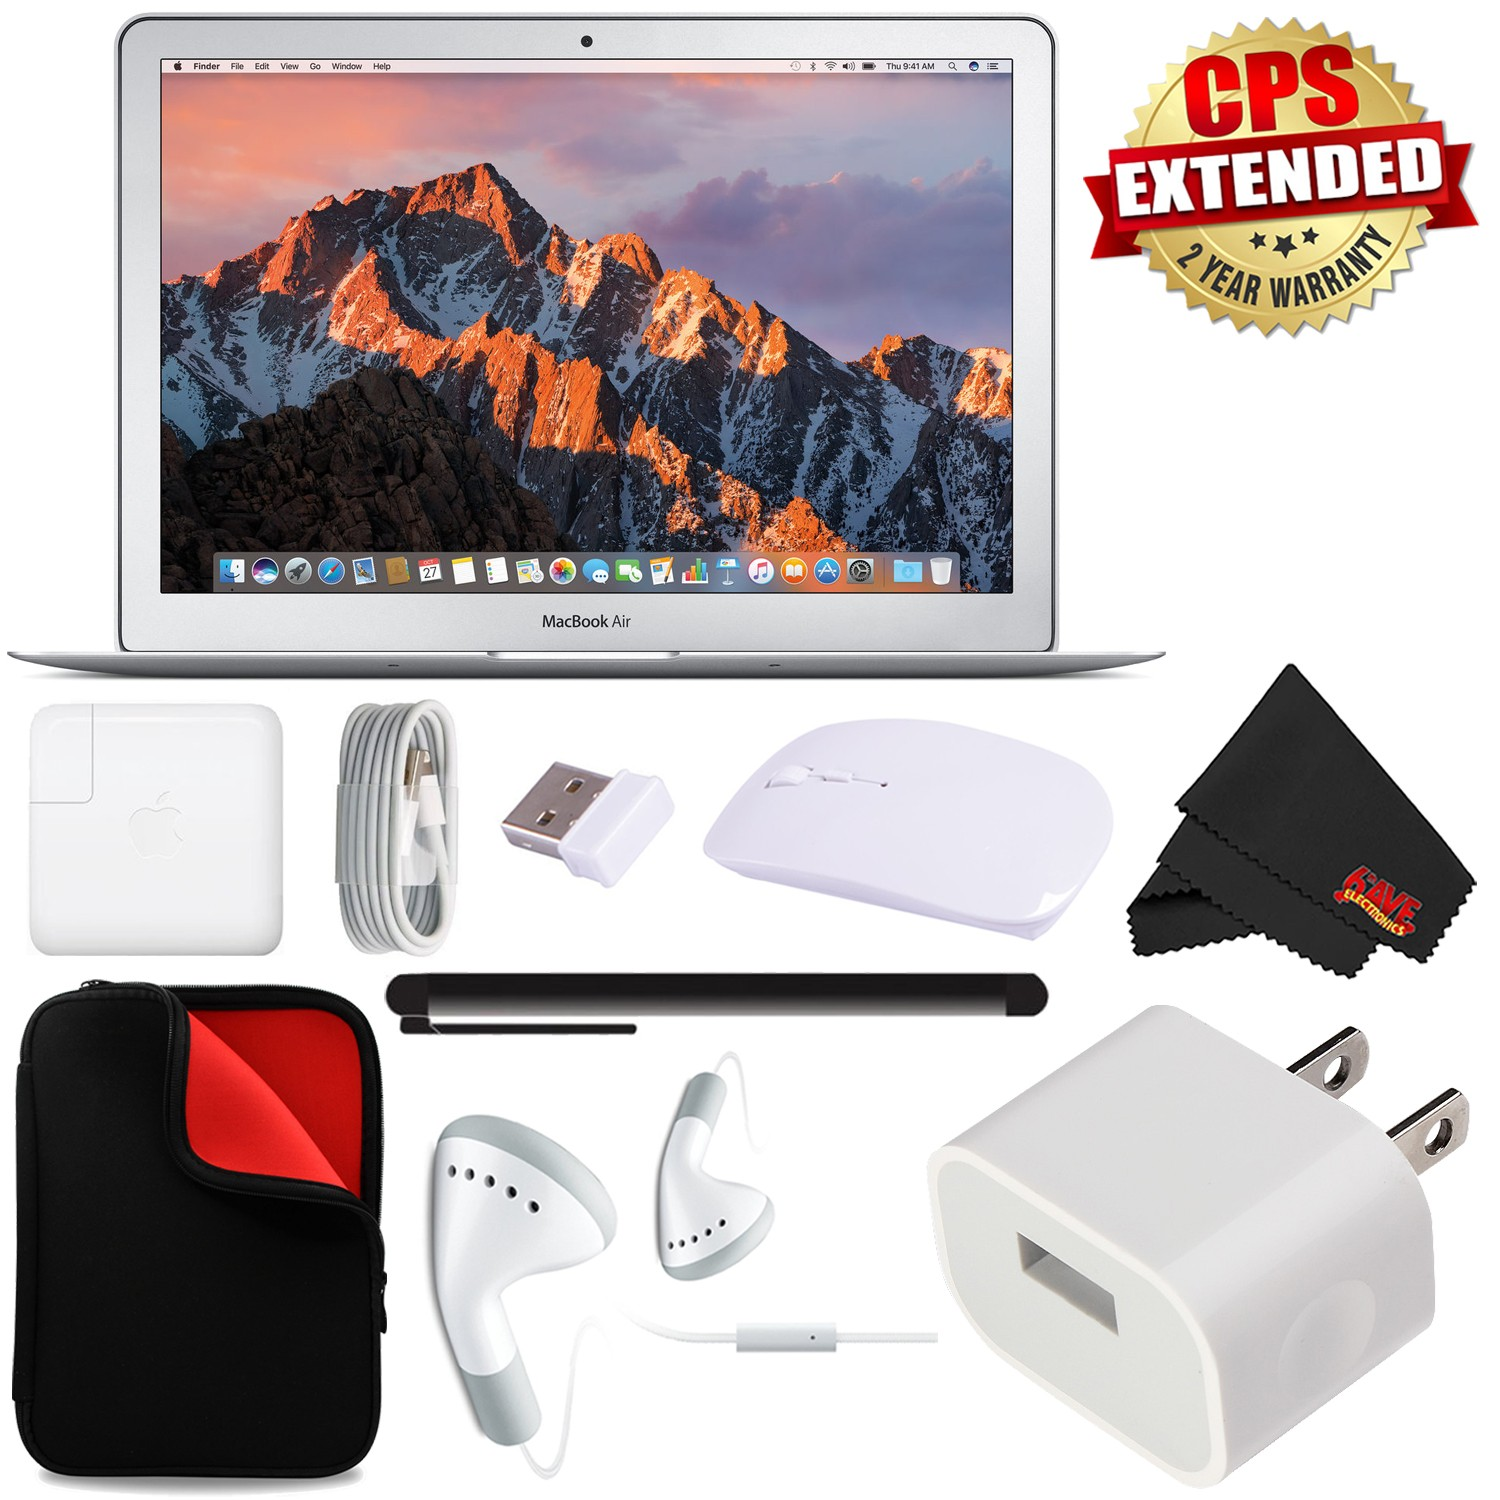 """Apple 13.3"""" MacBook Air 256GB SSD MQD42LL/A + MicroFiber Cloth + 2.4 GHz Slim Optical Wireless Bluetooth + Travel USB 5V Wall Charger for iPhone/iPad (White) + Universal Stylus for Tablets Bundle"""